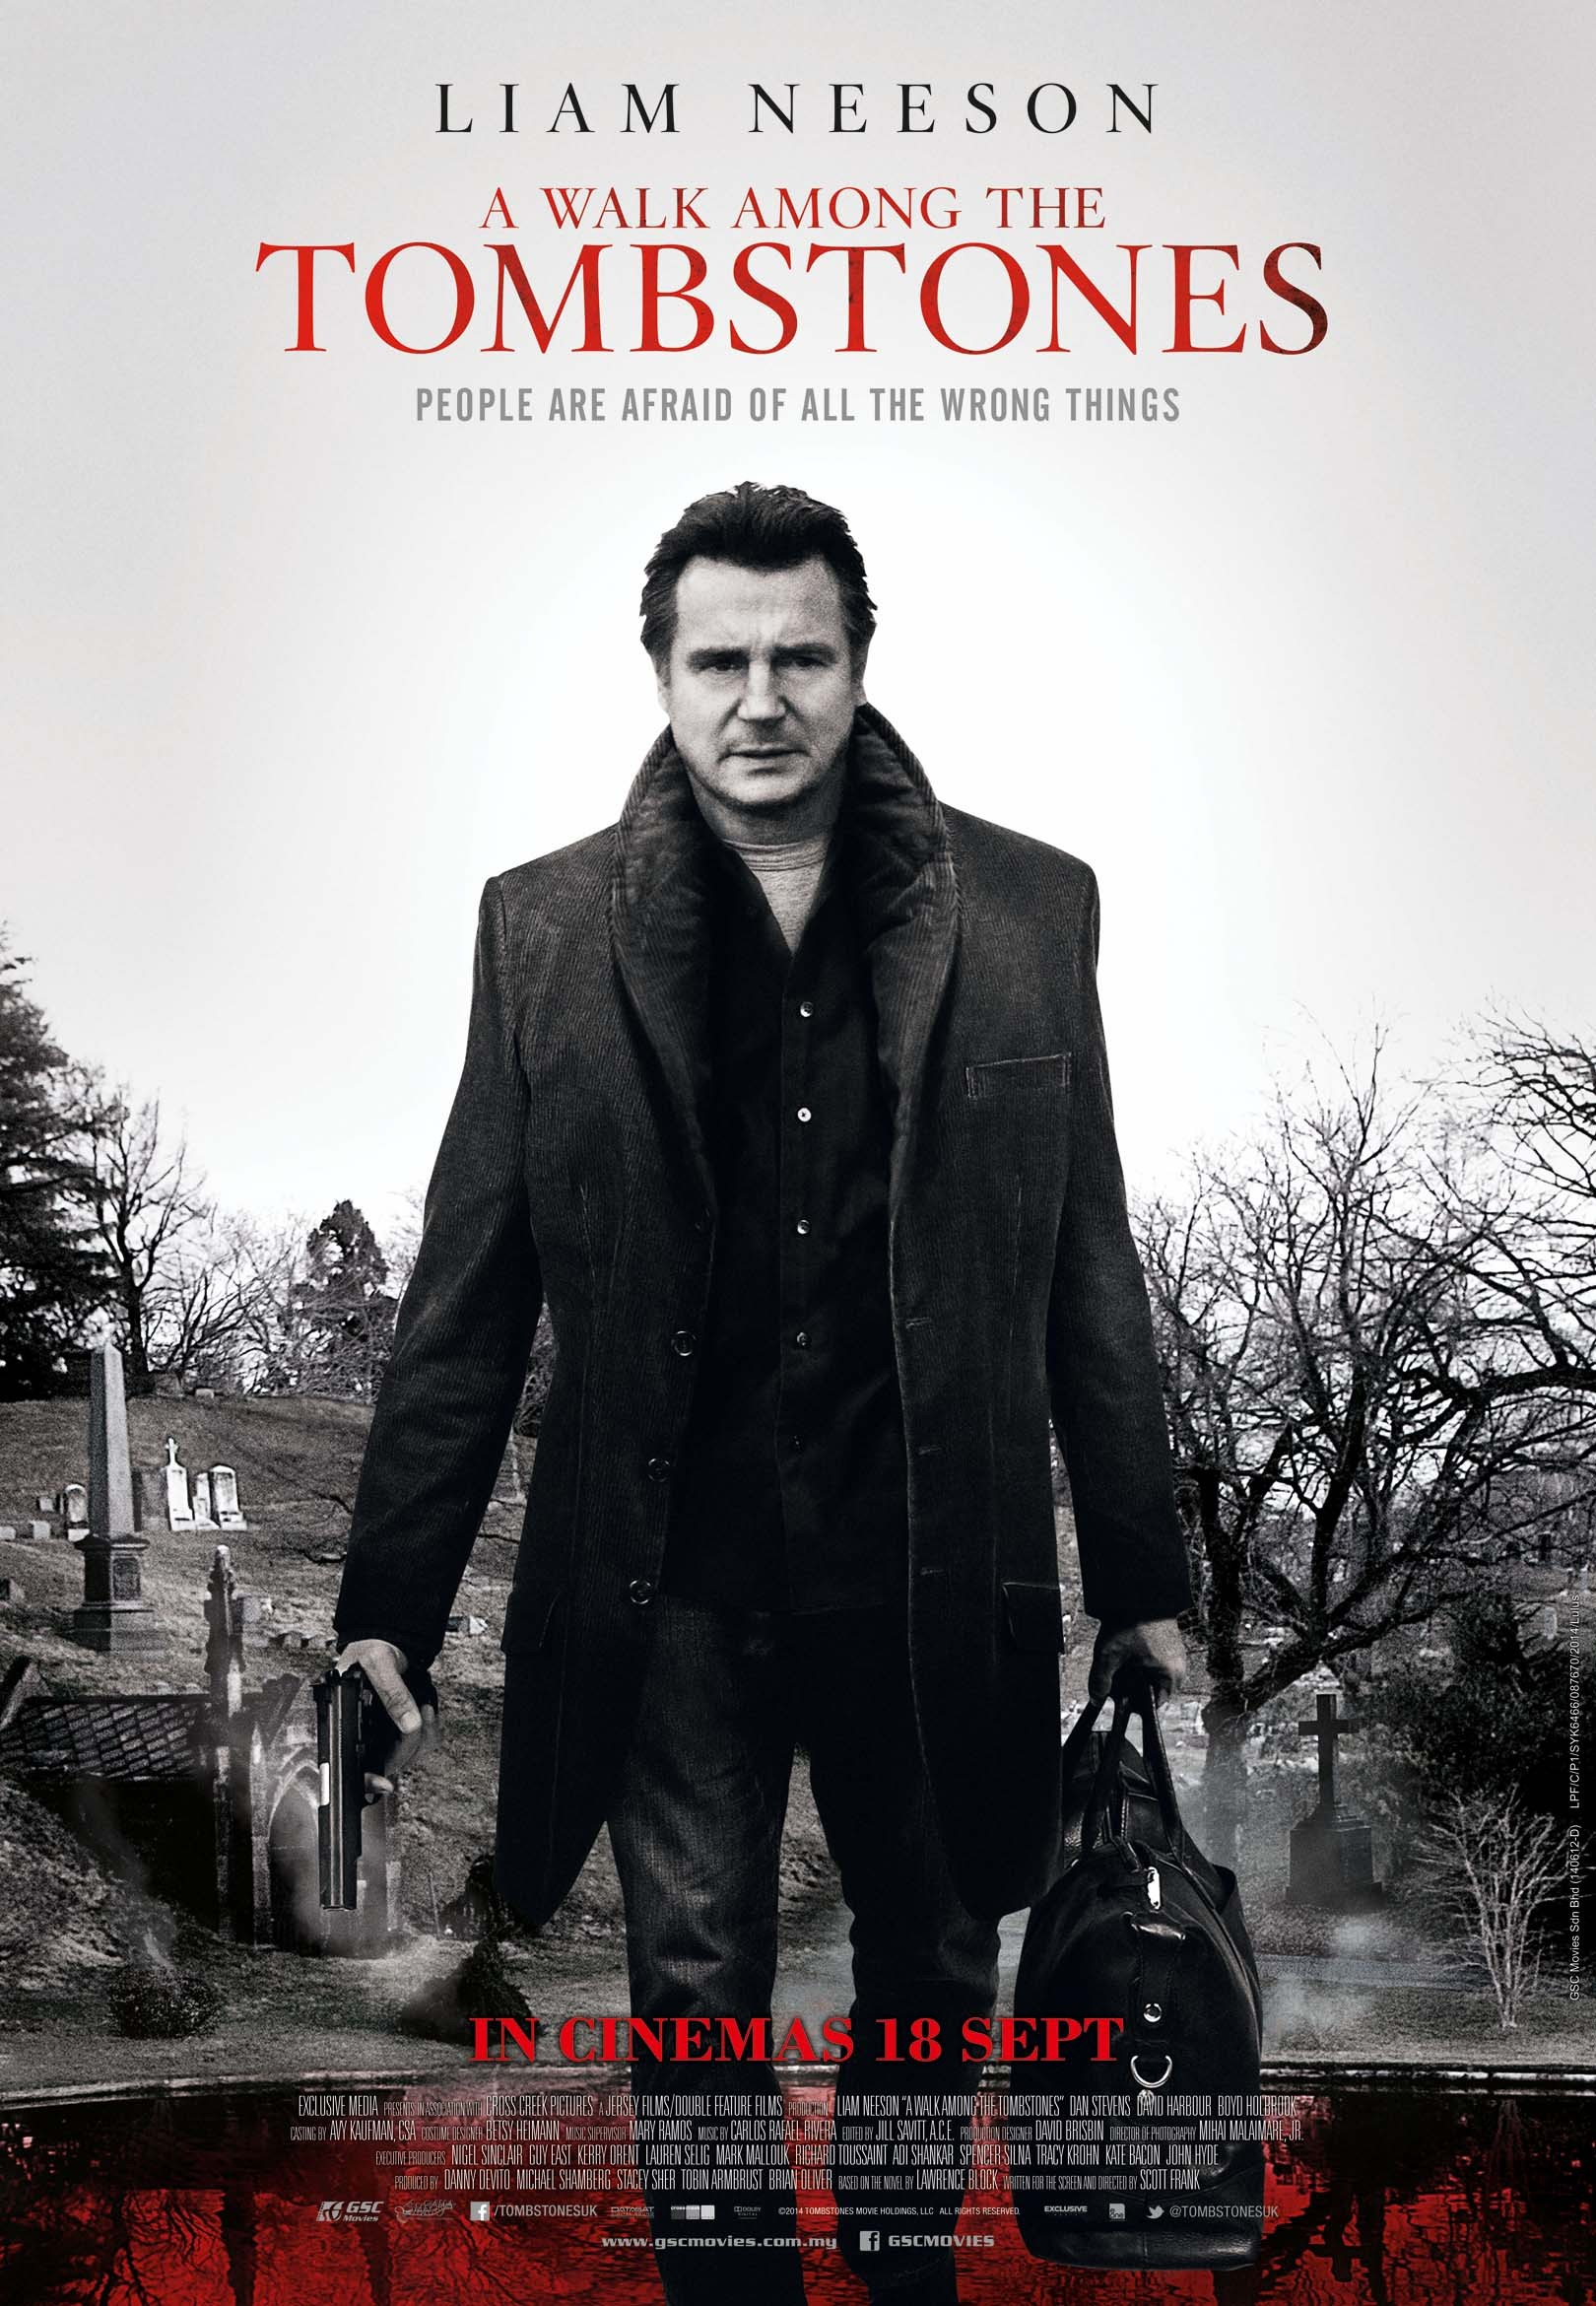 A Walk Among the Tombstones-Official Poster Banner PROMO XXLG-11AGOSTO2014